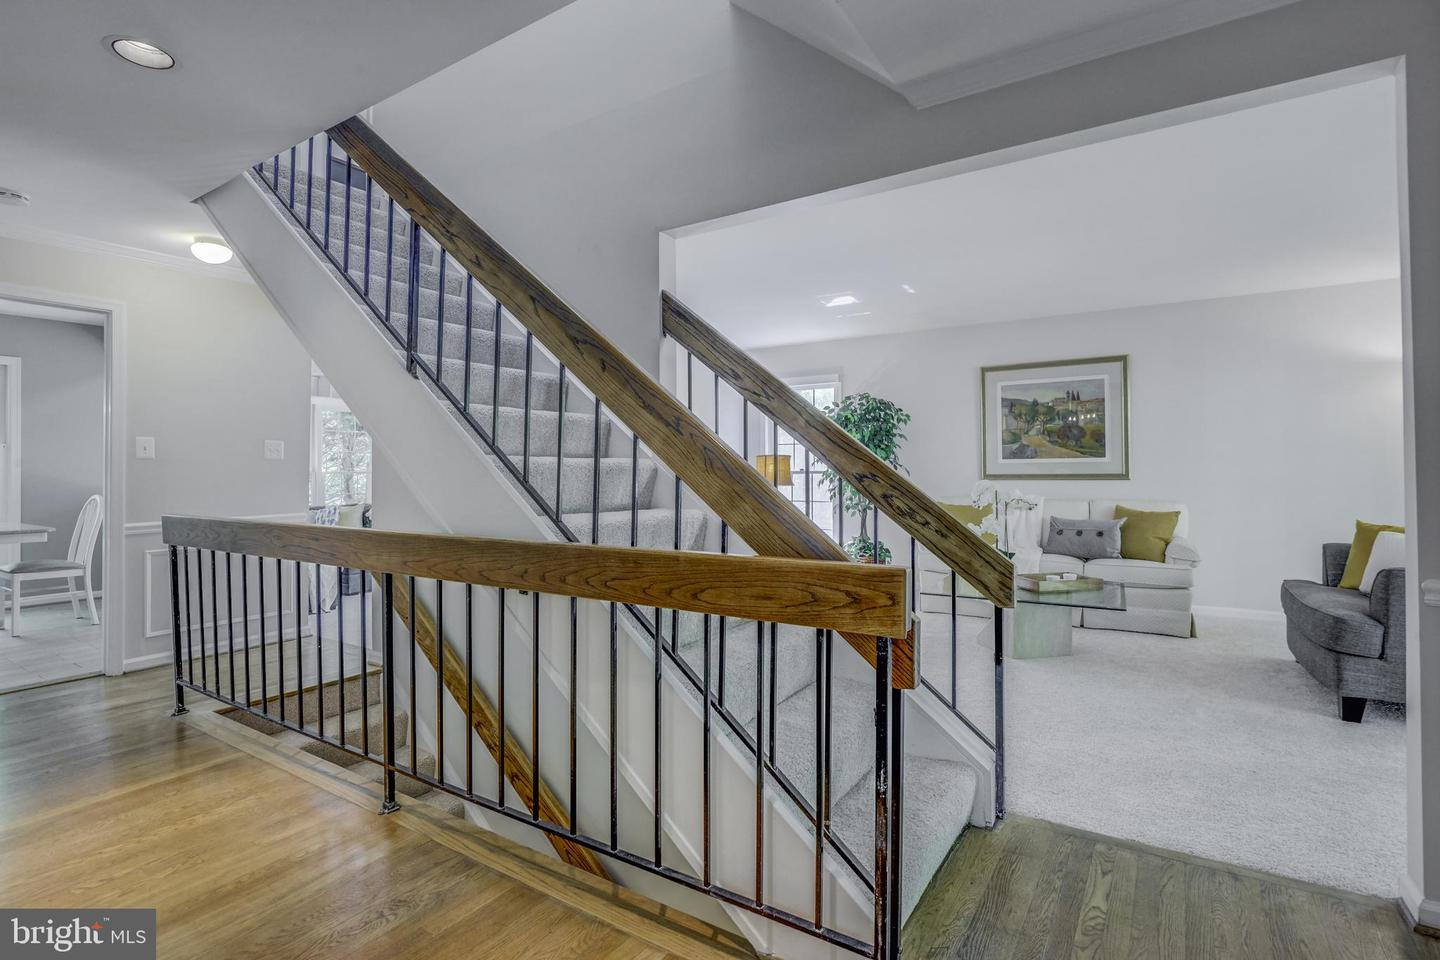 Additional photo for property listing at 14405 Rich Branch Dr North Potomac, Maryland 20878 United States